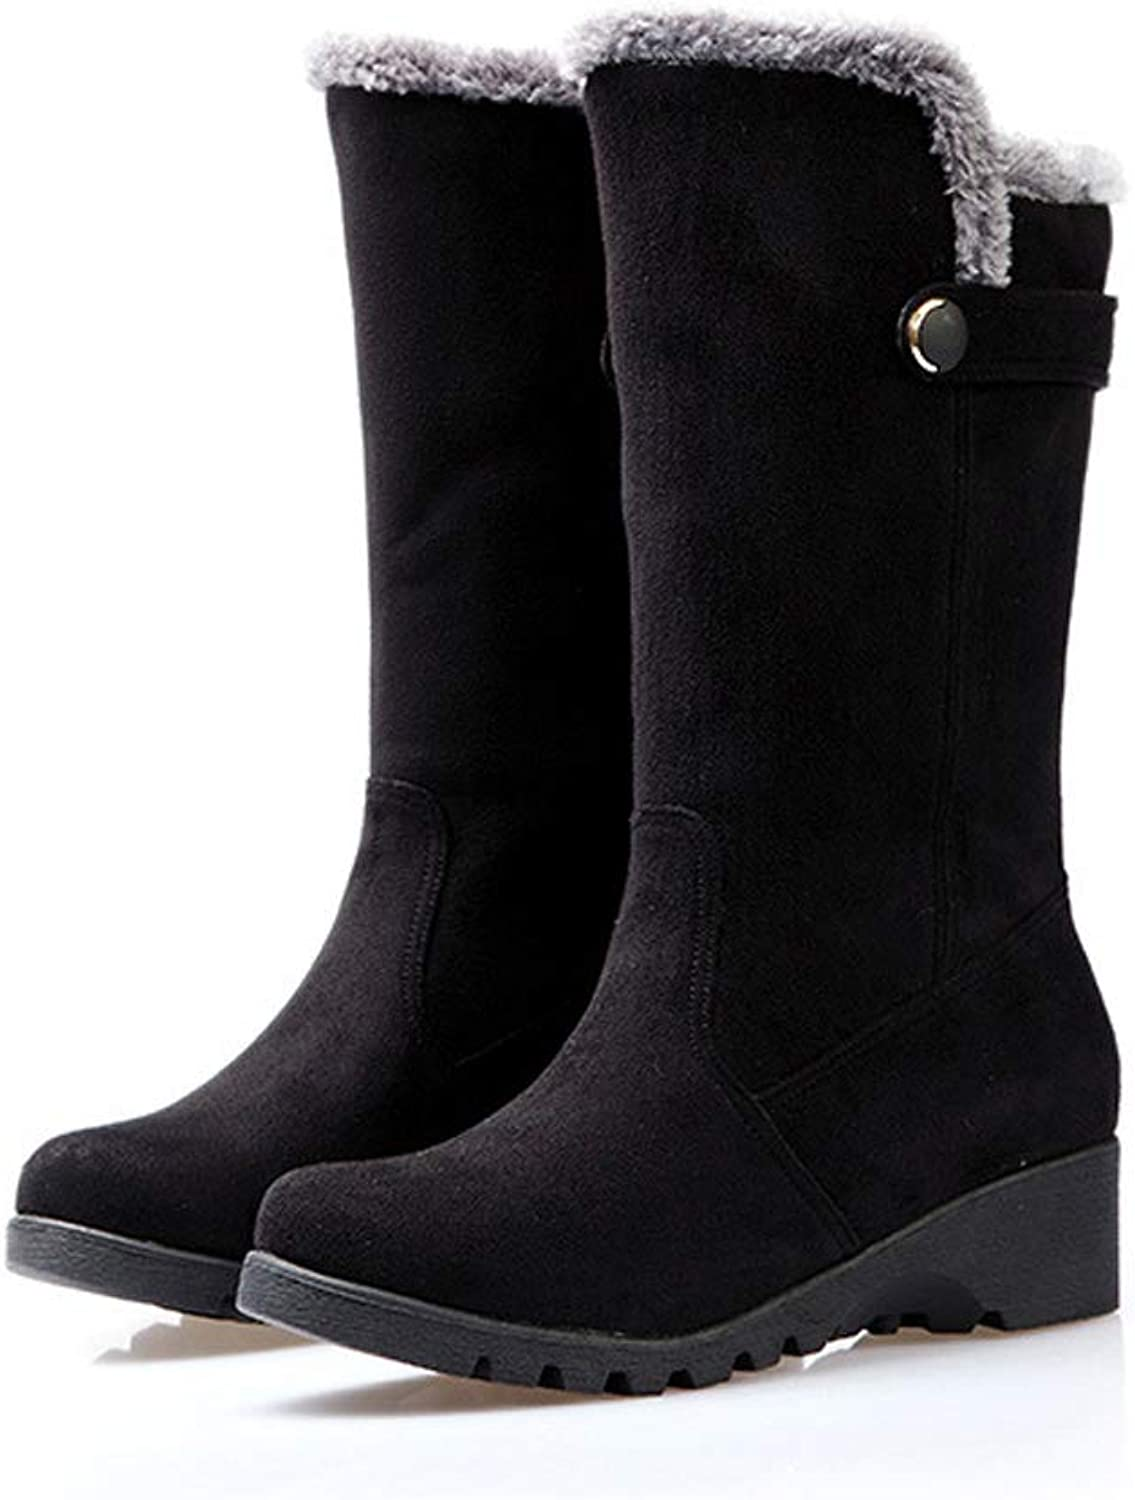 Womens Boots Winter Warm Soft Mid-Calf Riding Boots Slip On Wedge Heel Outdoor shoes (Black Brown)